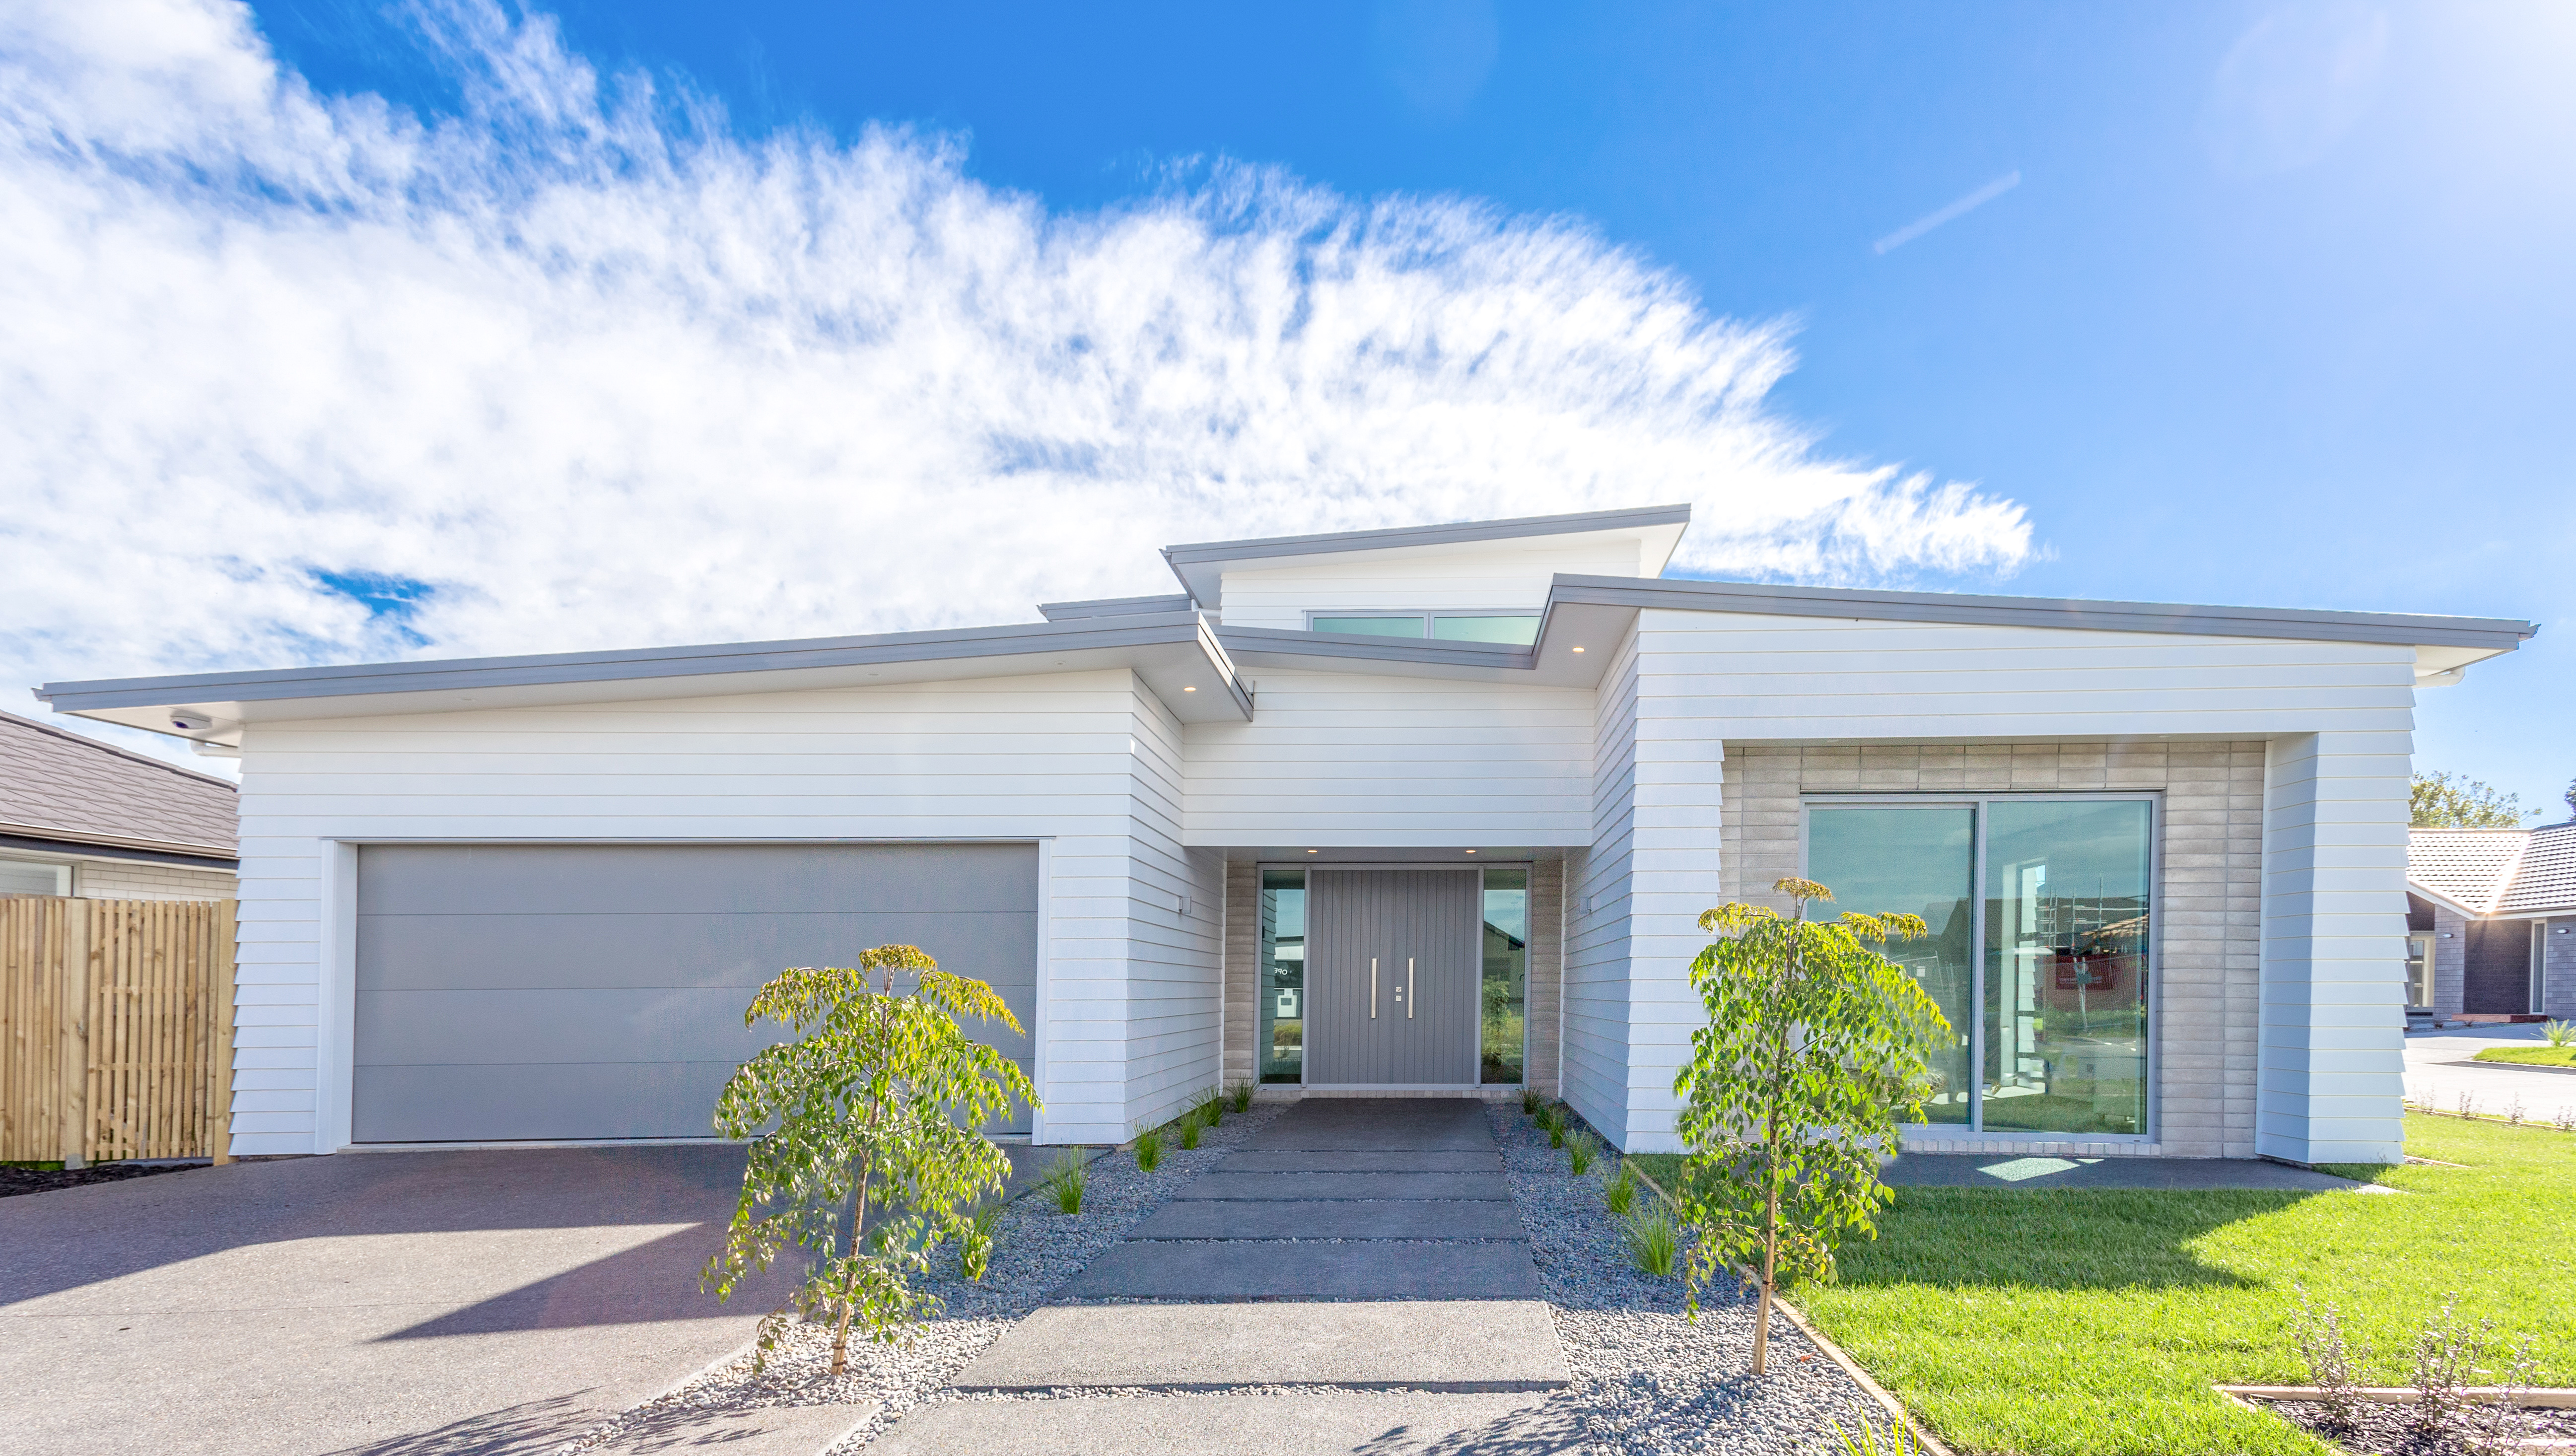 Home I Anthem Homes Waikato Master Builders I Design And Build - Home-pictures